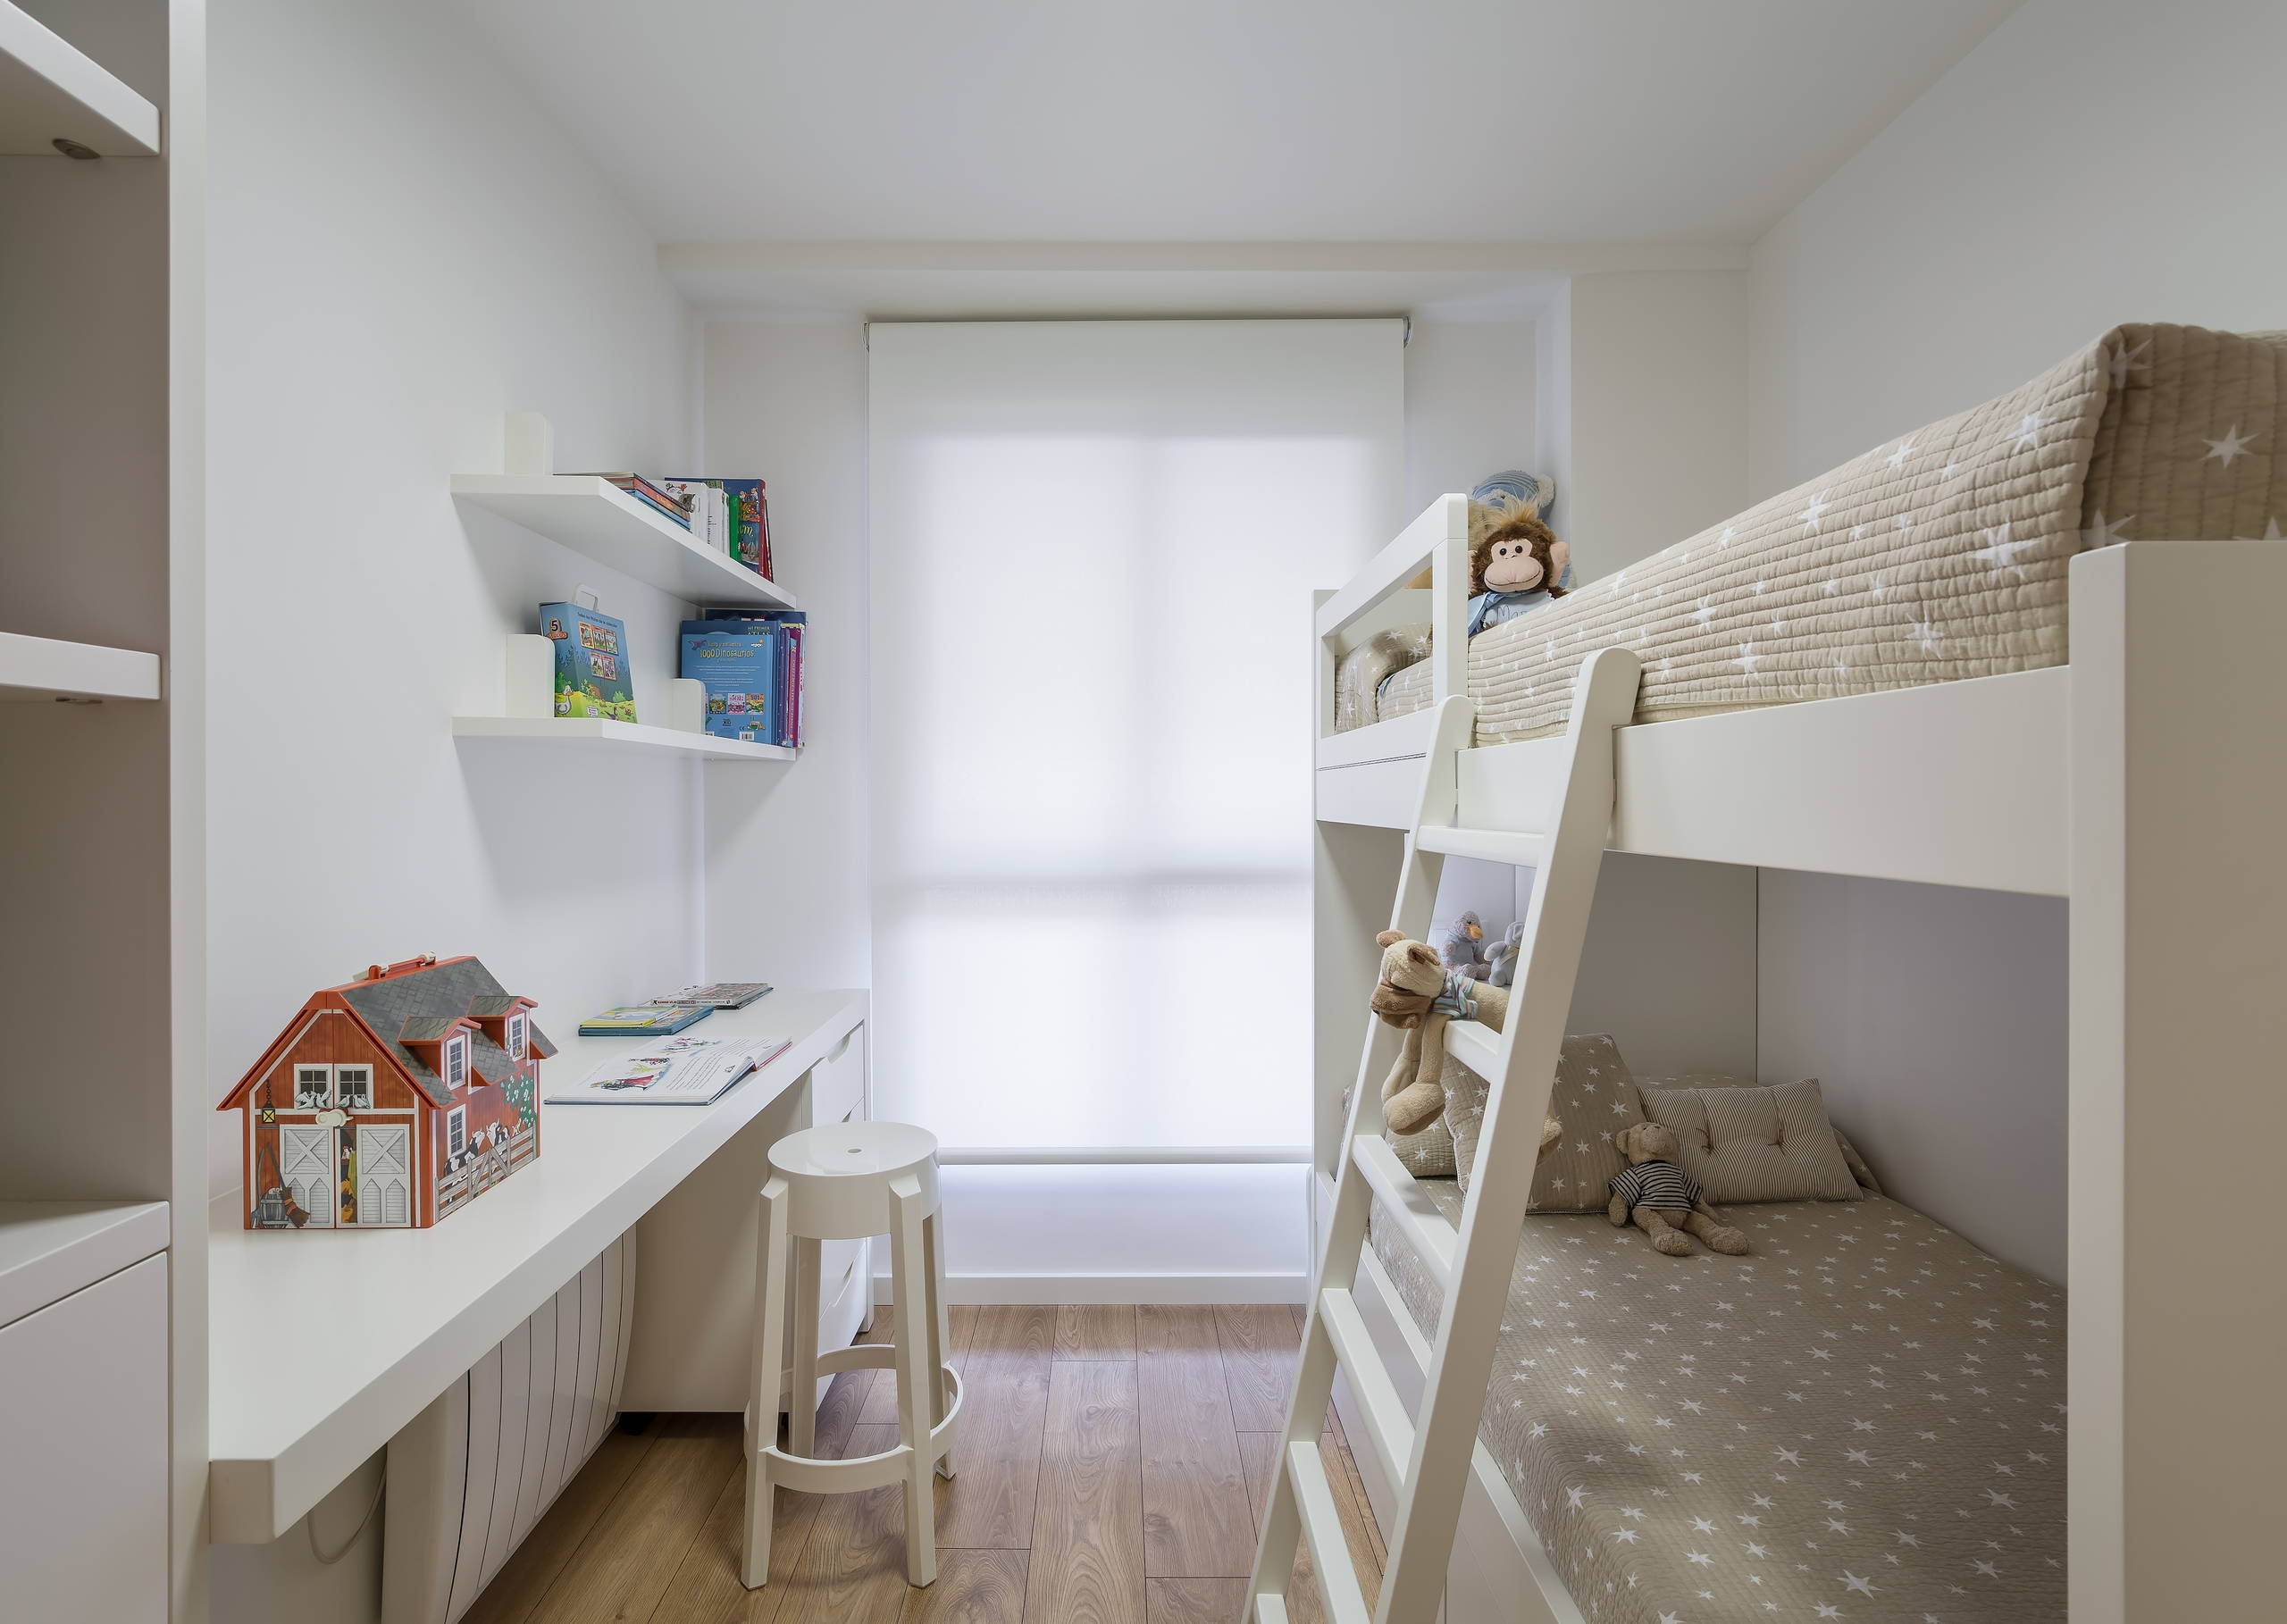 The Kidsroom 15 Enjoyable Modern Kids 39 Room Designs That Will Entertain